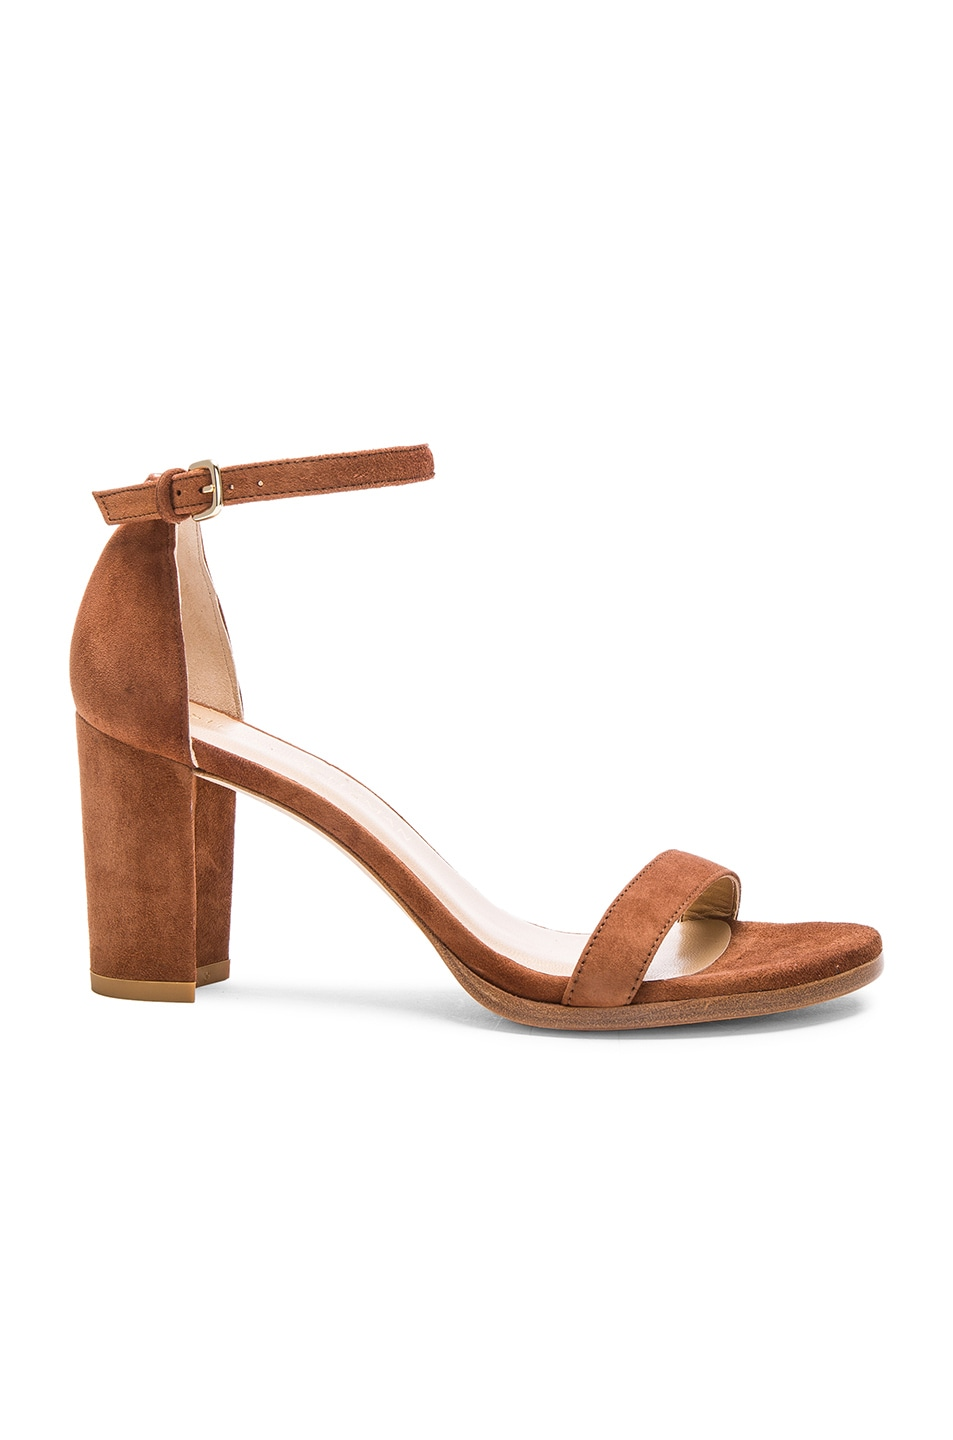 Image 1 of Stuart Weitzman Suede Nearly Nude Heel in Saddle